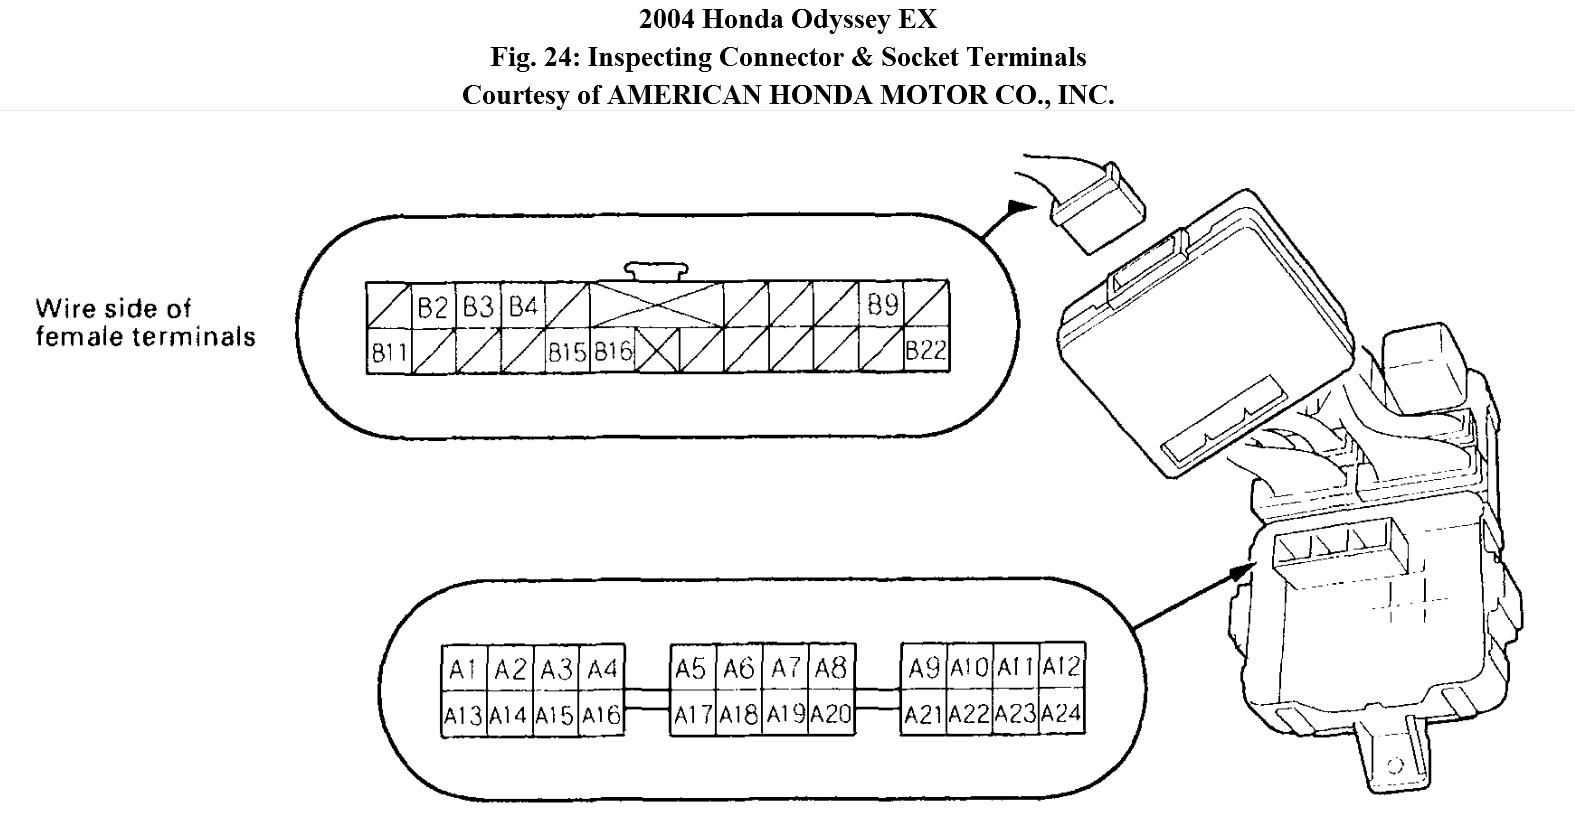 1999 Honda Odyssey Fuse Box Diagram 35 Wiring Images Accord Original Vin 2hkl18654h500242 Not Sure If Lx Or Ex My Wifes Car Began